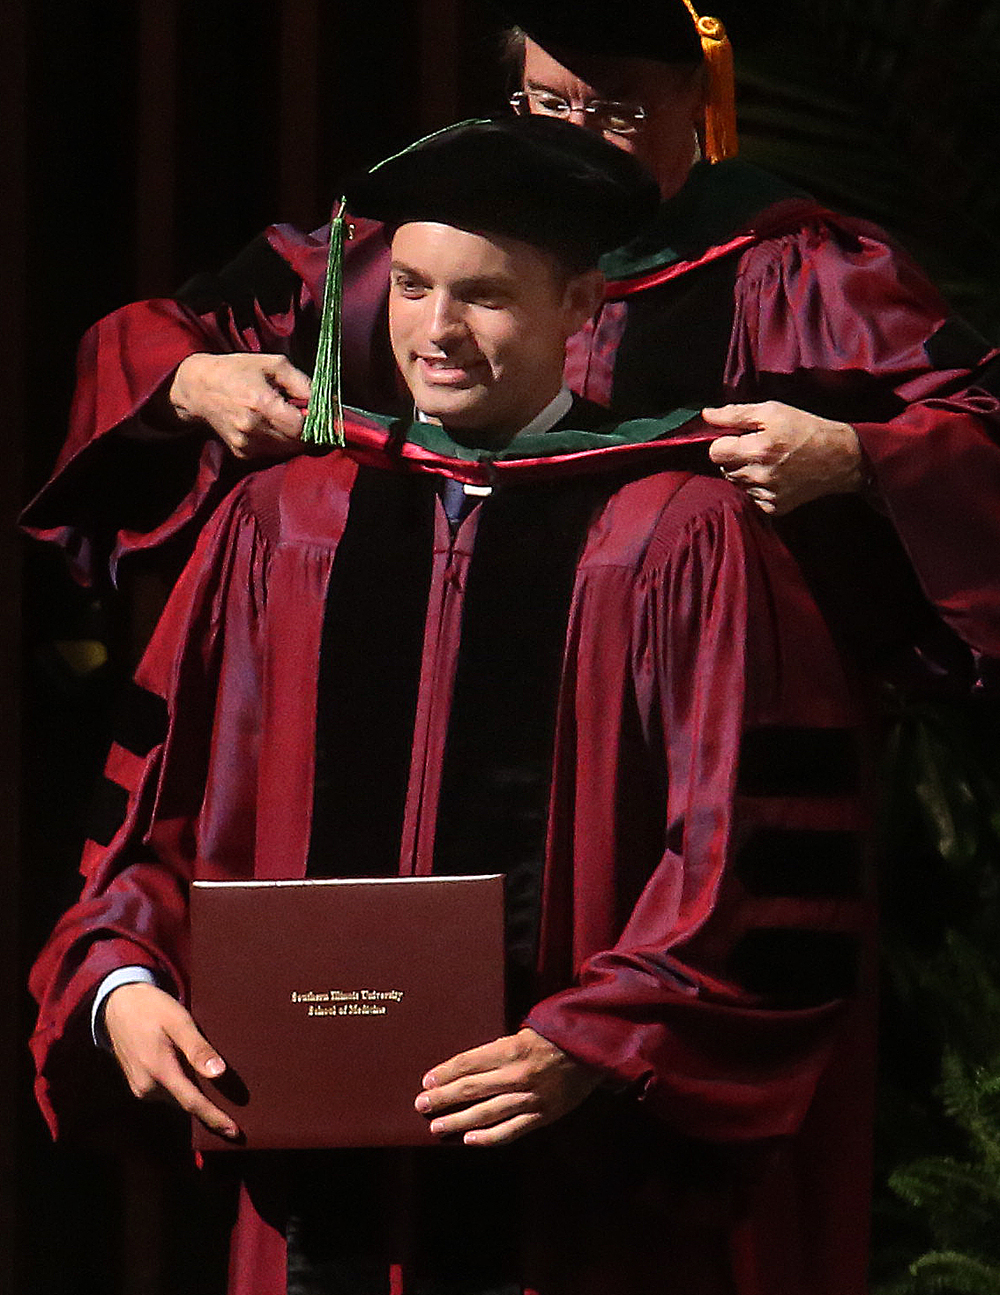 Chatham resident Tyler Fulks is hooded with his medical degree by former SIU Medical School dean and provost J. Kevin Dorsey. Fulks will be doing his residency in emergency medicine at the SIU School of Medicine affiliated hospitals in Springfield. David Spencer/The State Journal-Register